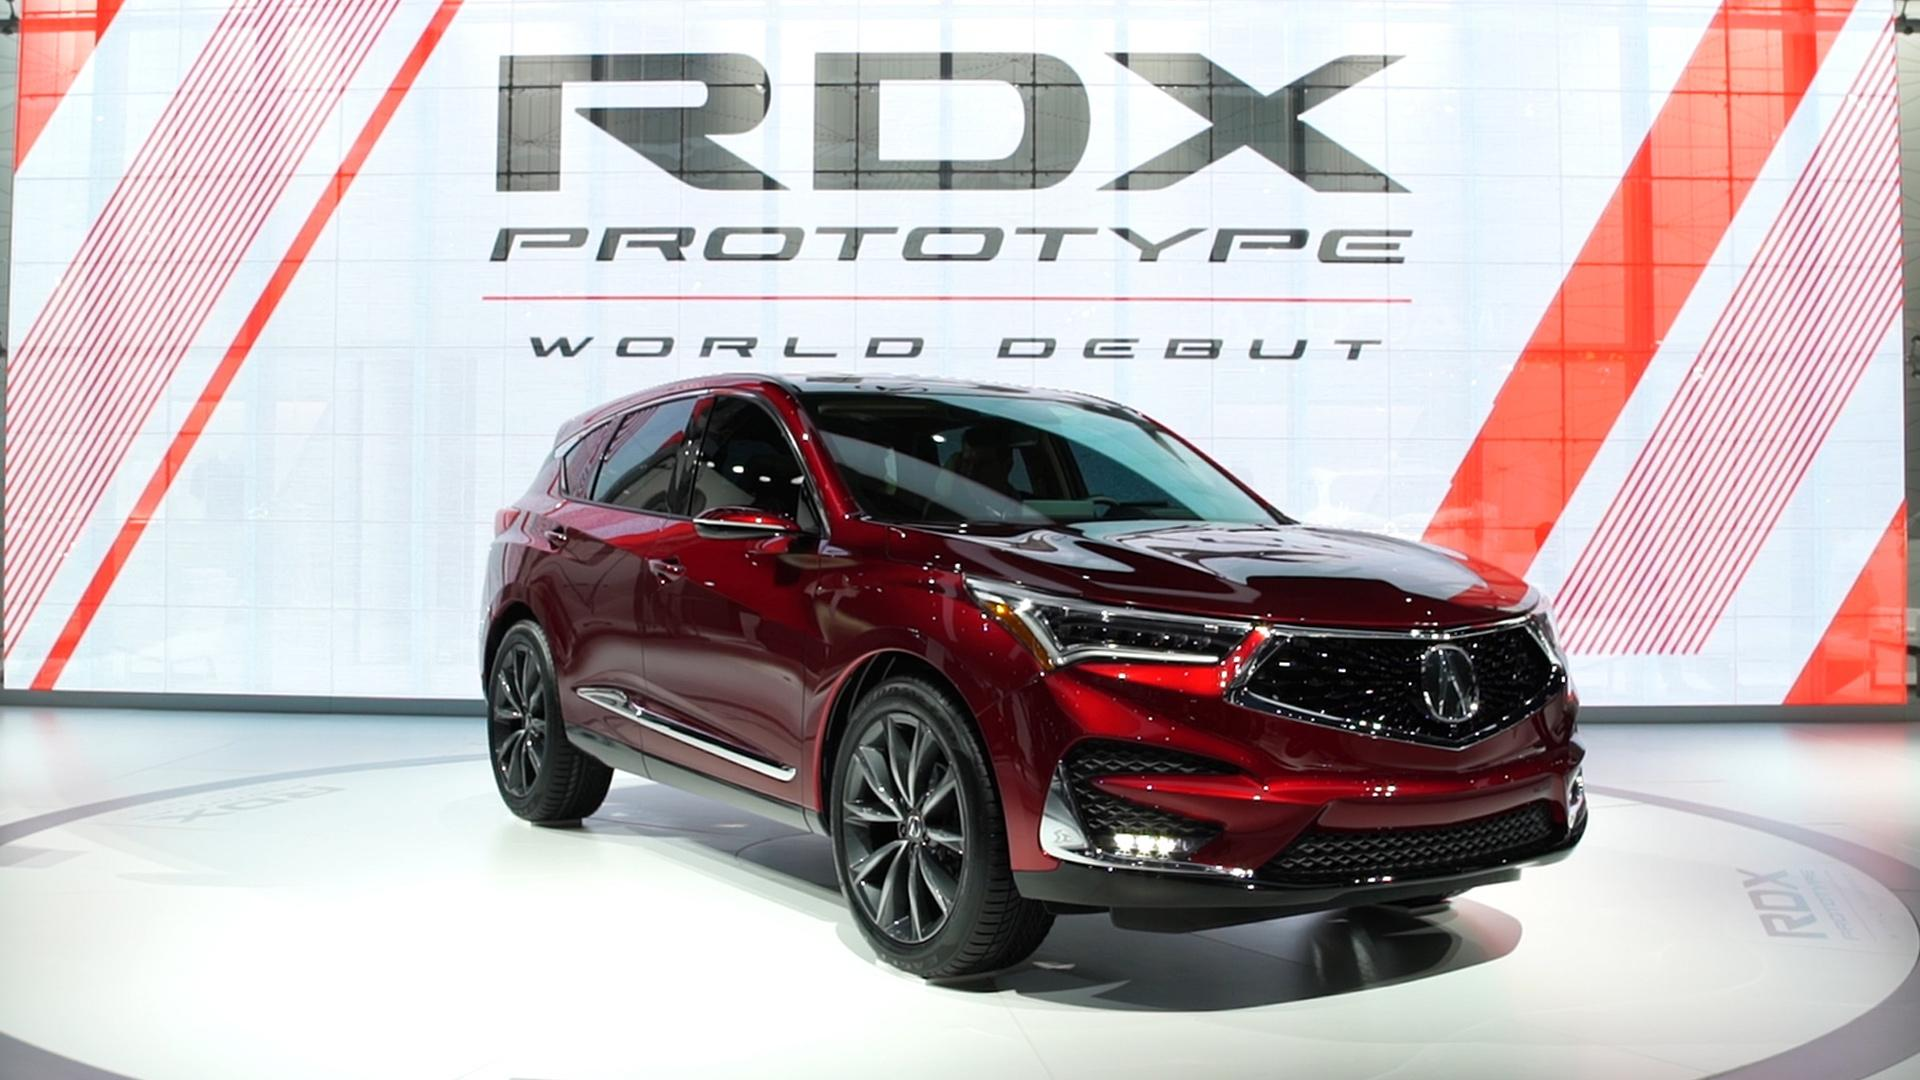 rdac here accessories new product acura click rdx of